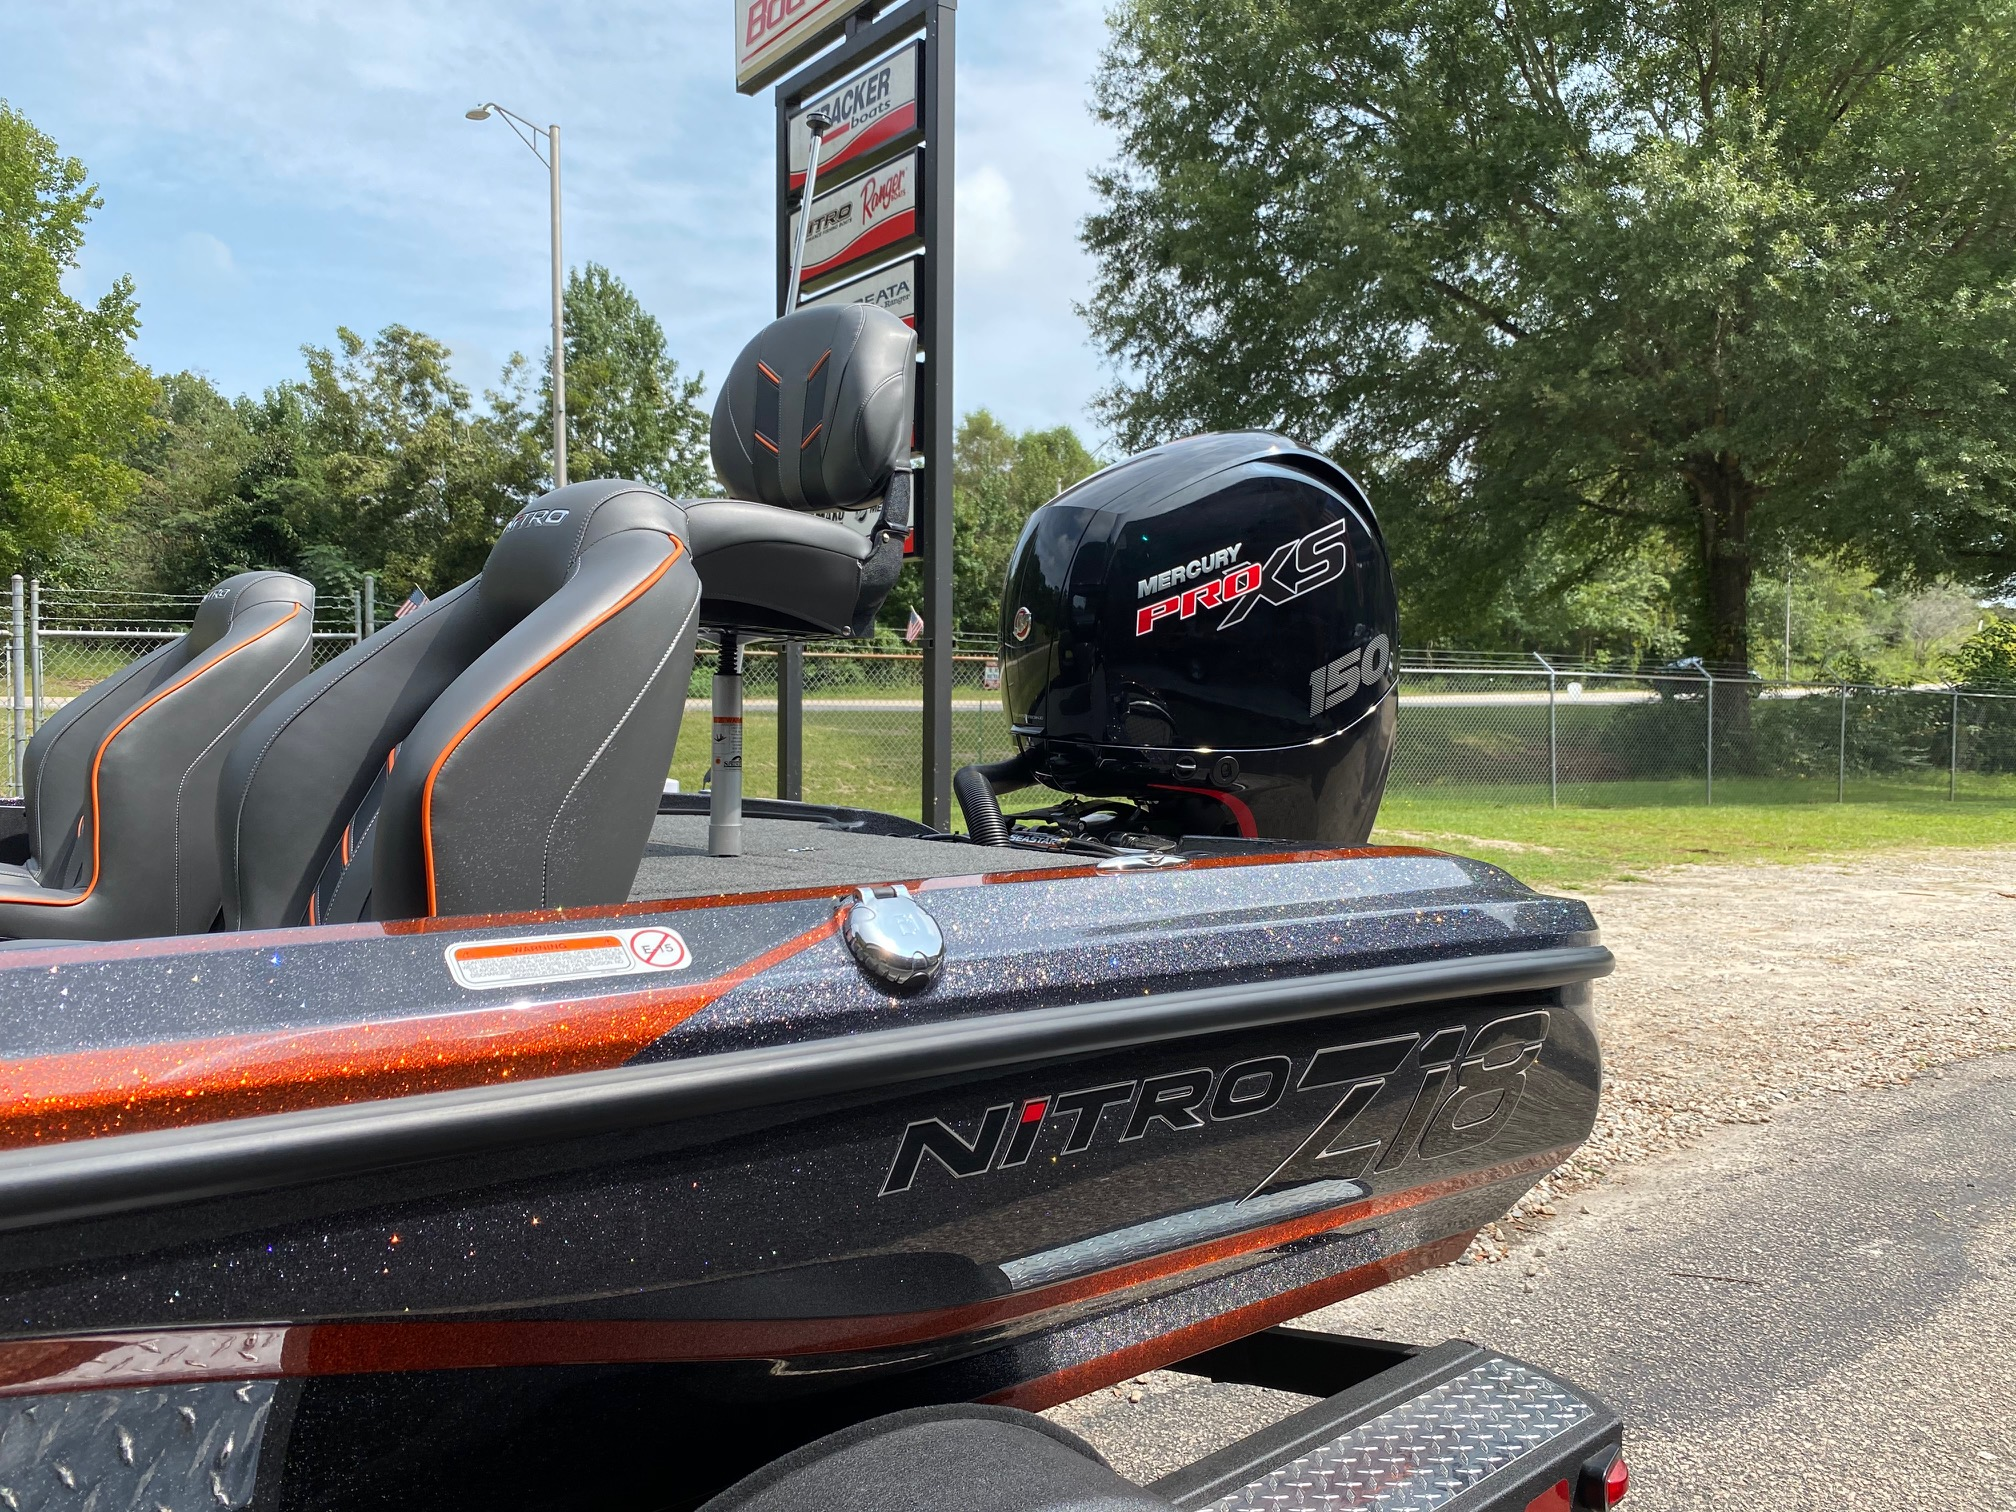 2021 Nitro boat for sale, model of the boat is Z18 W/150L PXS4 & Image # 46 of 47